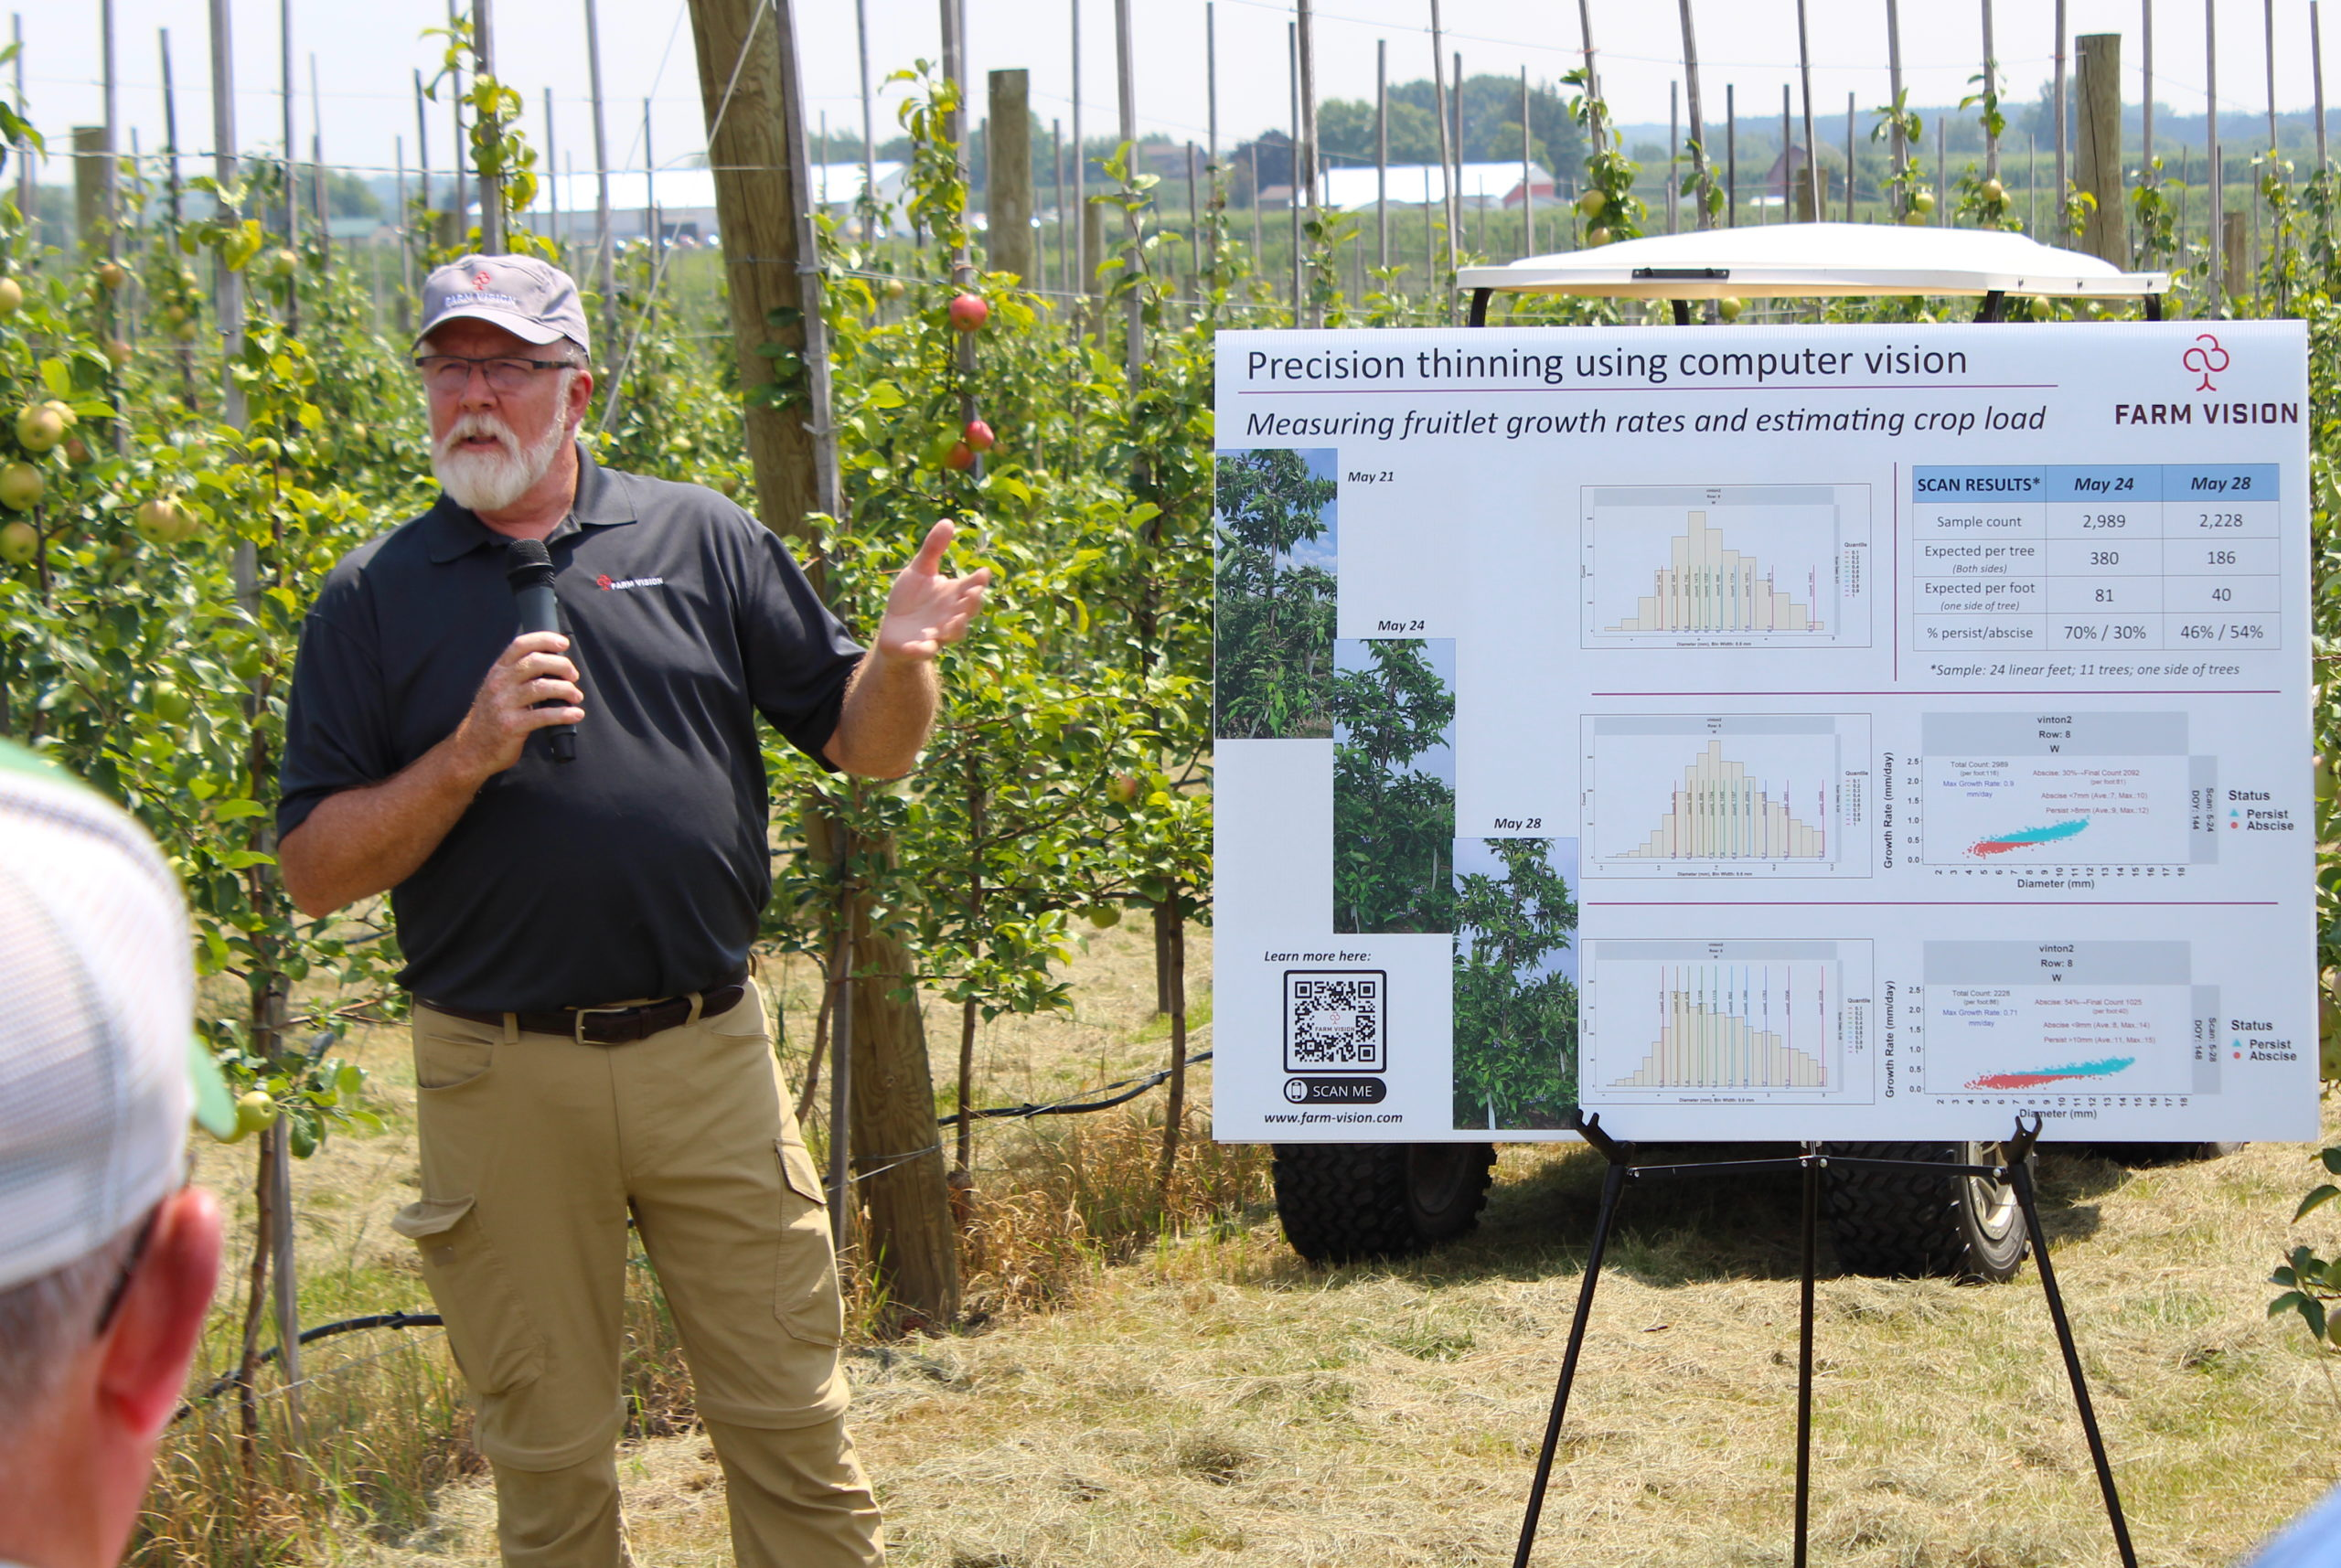 Farm Vision, a technology for visually measuring fruitlet growth rates and estimating crop level, gave a demonstration.